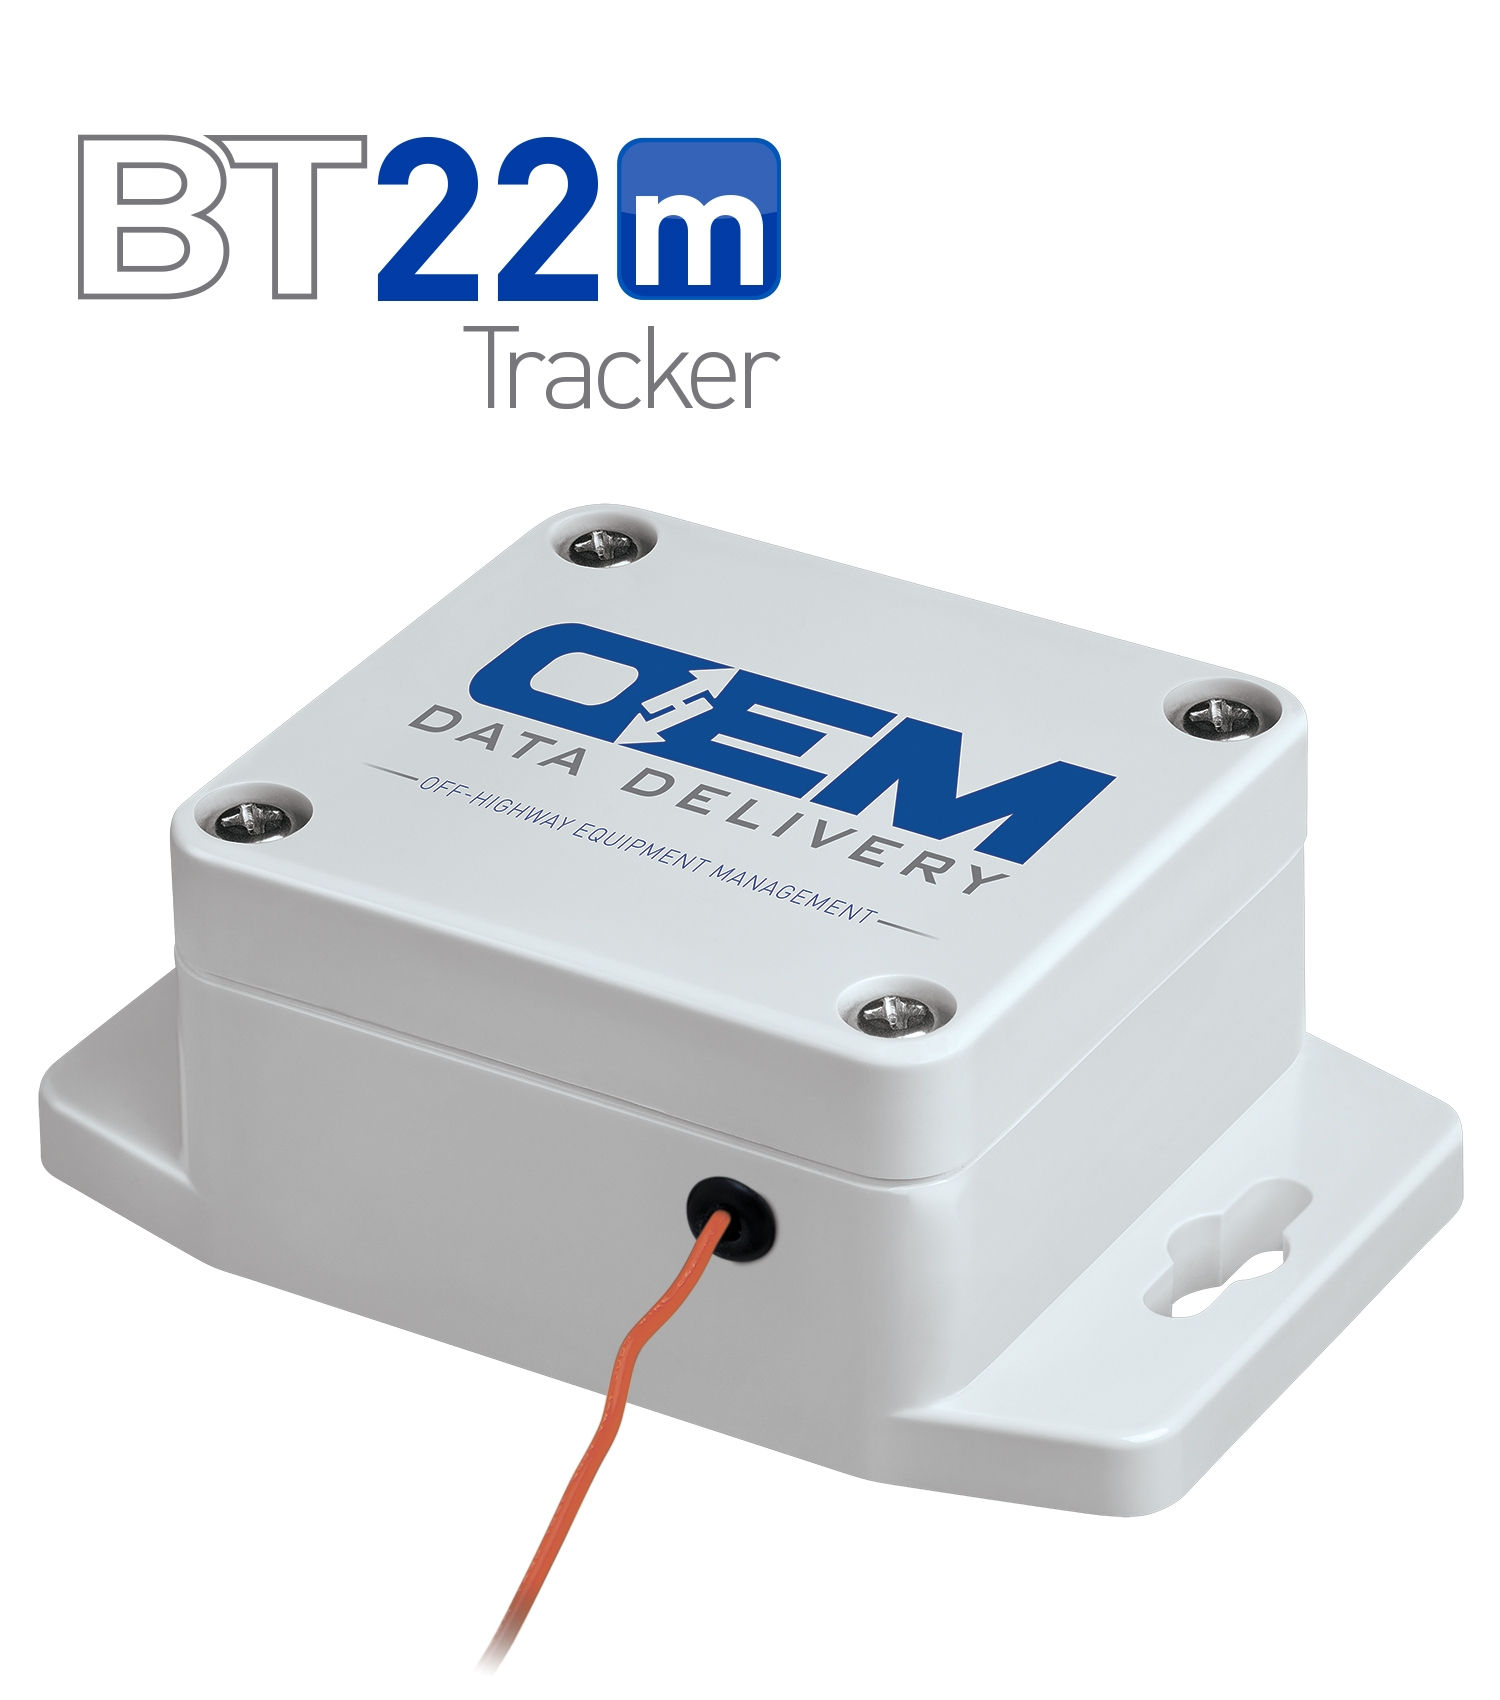 BT22m Tracker with Logo